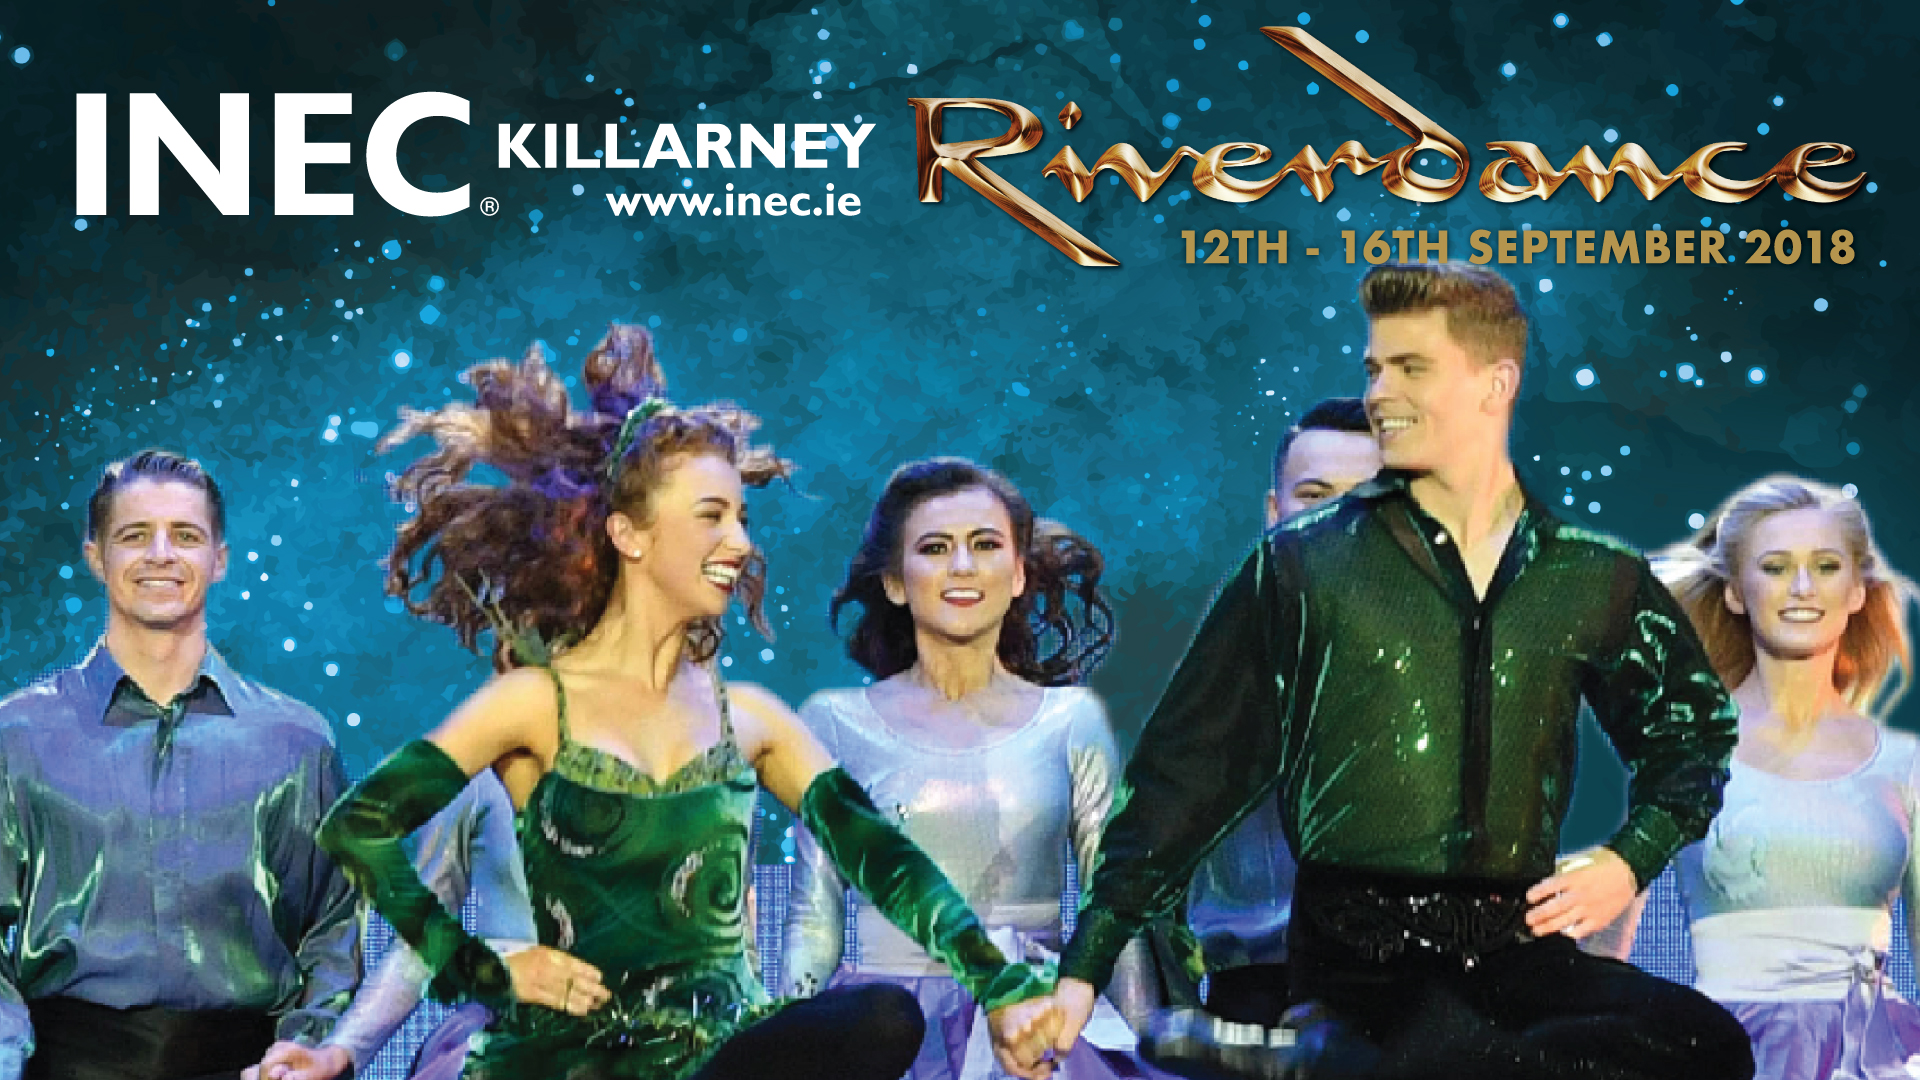 Become a Riverdance VIP this summer at the INEC Killarney Sept 12 -16